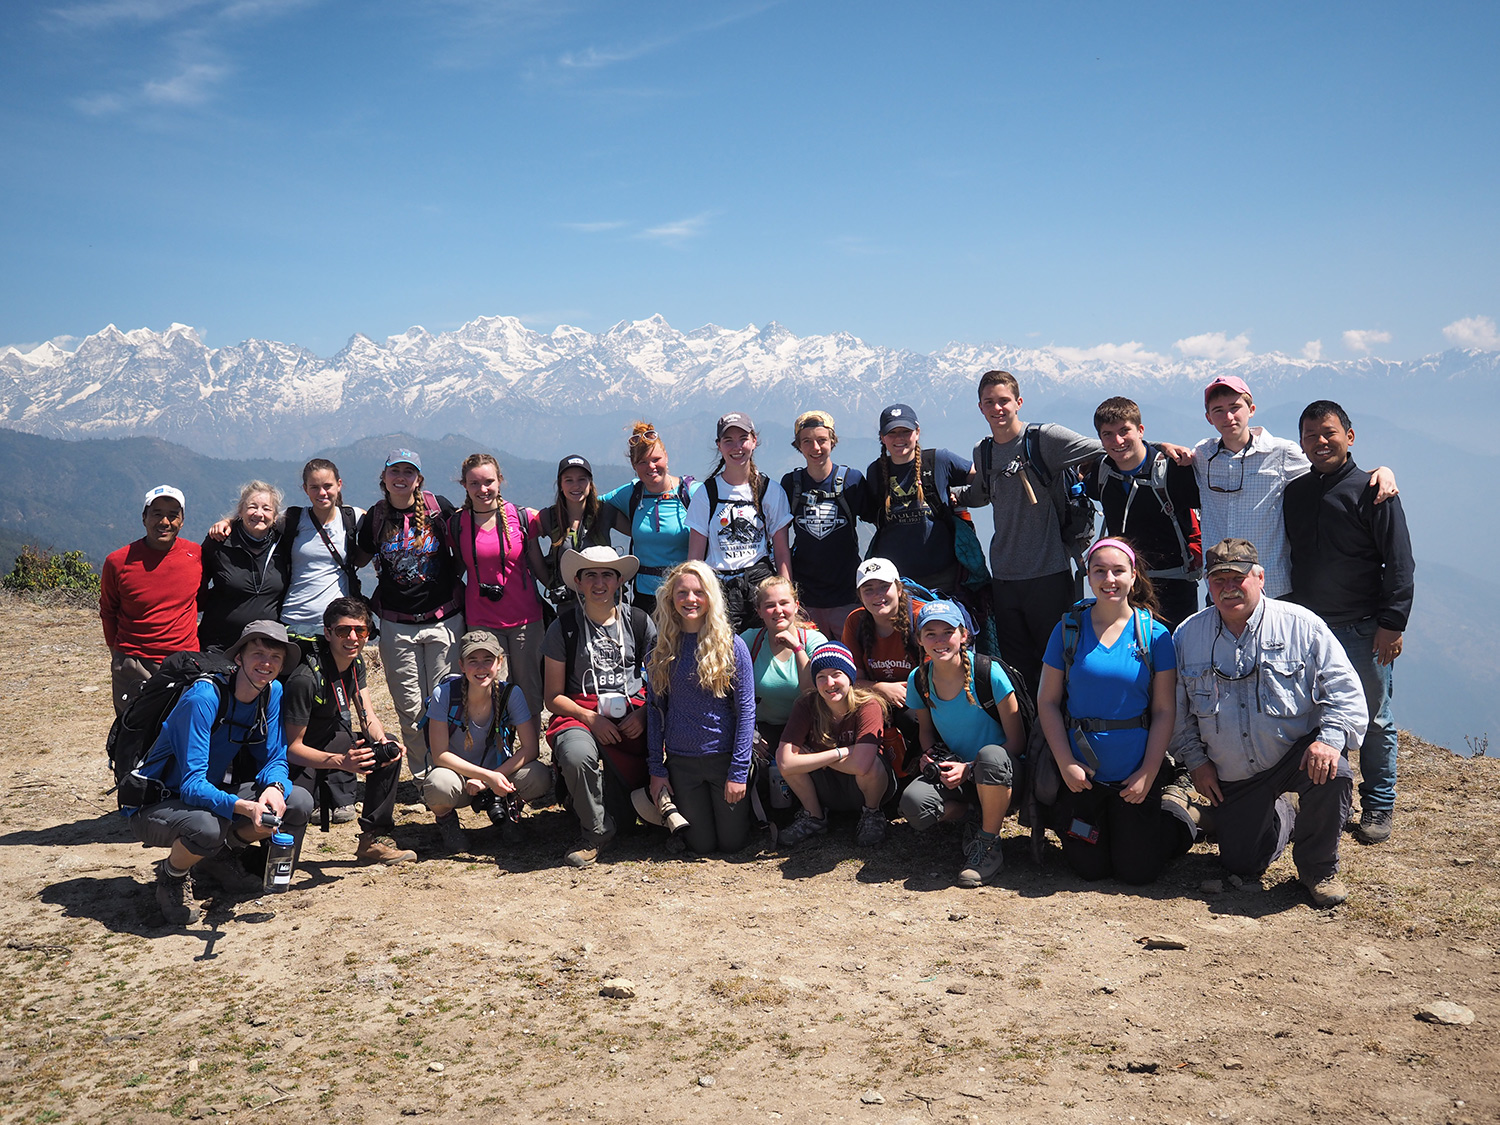 TVolunteer teacher Barb Figg (left, back row) and her husband Jim Figg (right, front row) pose with other volunteers with some of the world's highest peaks in the background.